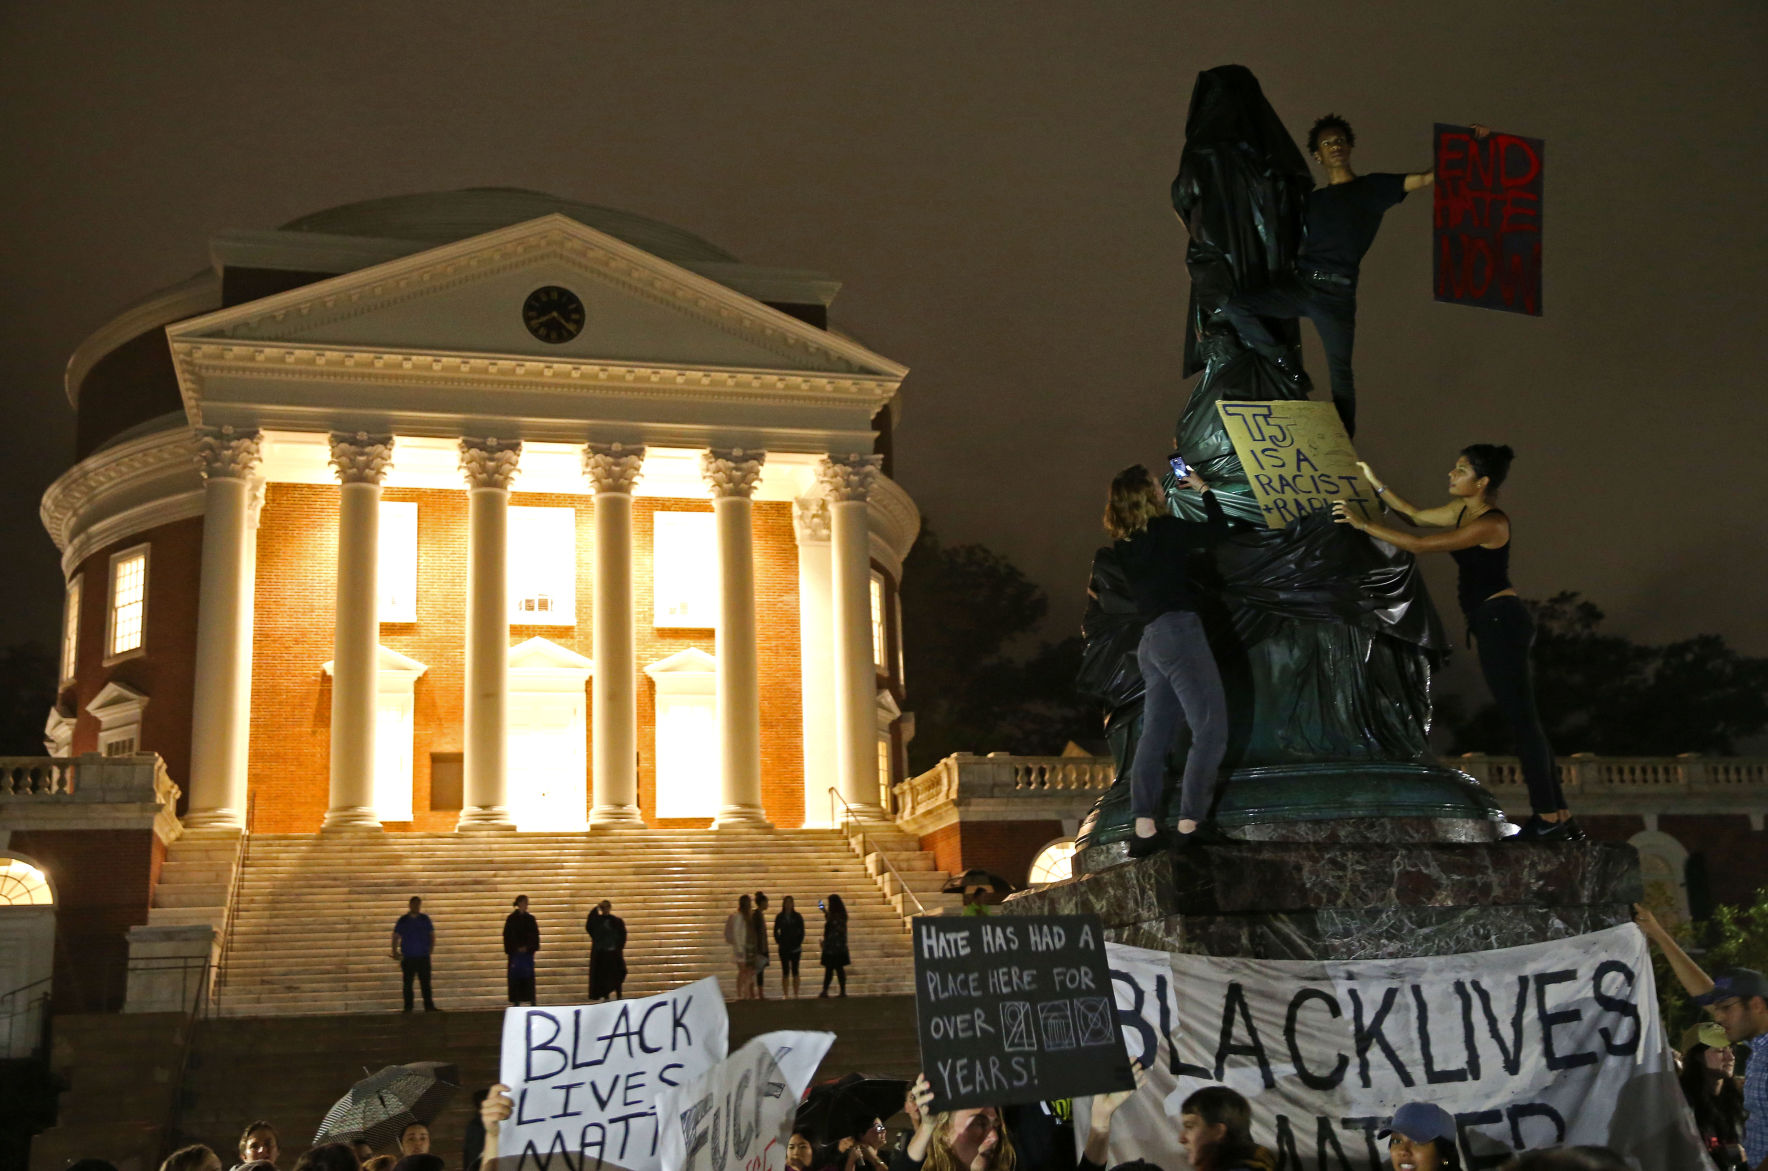 Students who shrouded Jefferson statue were 'desecrating' sacred ground, UV president says